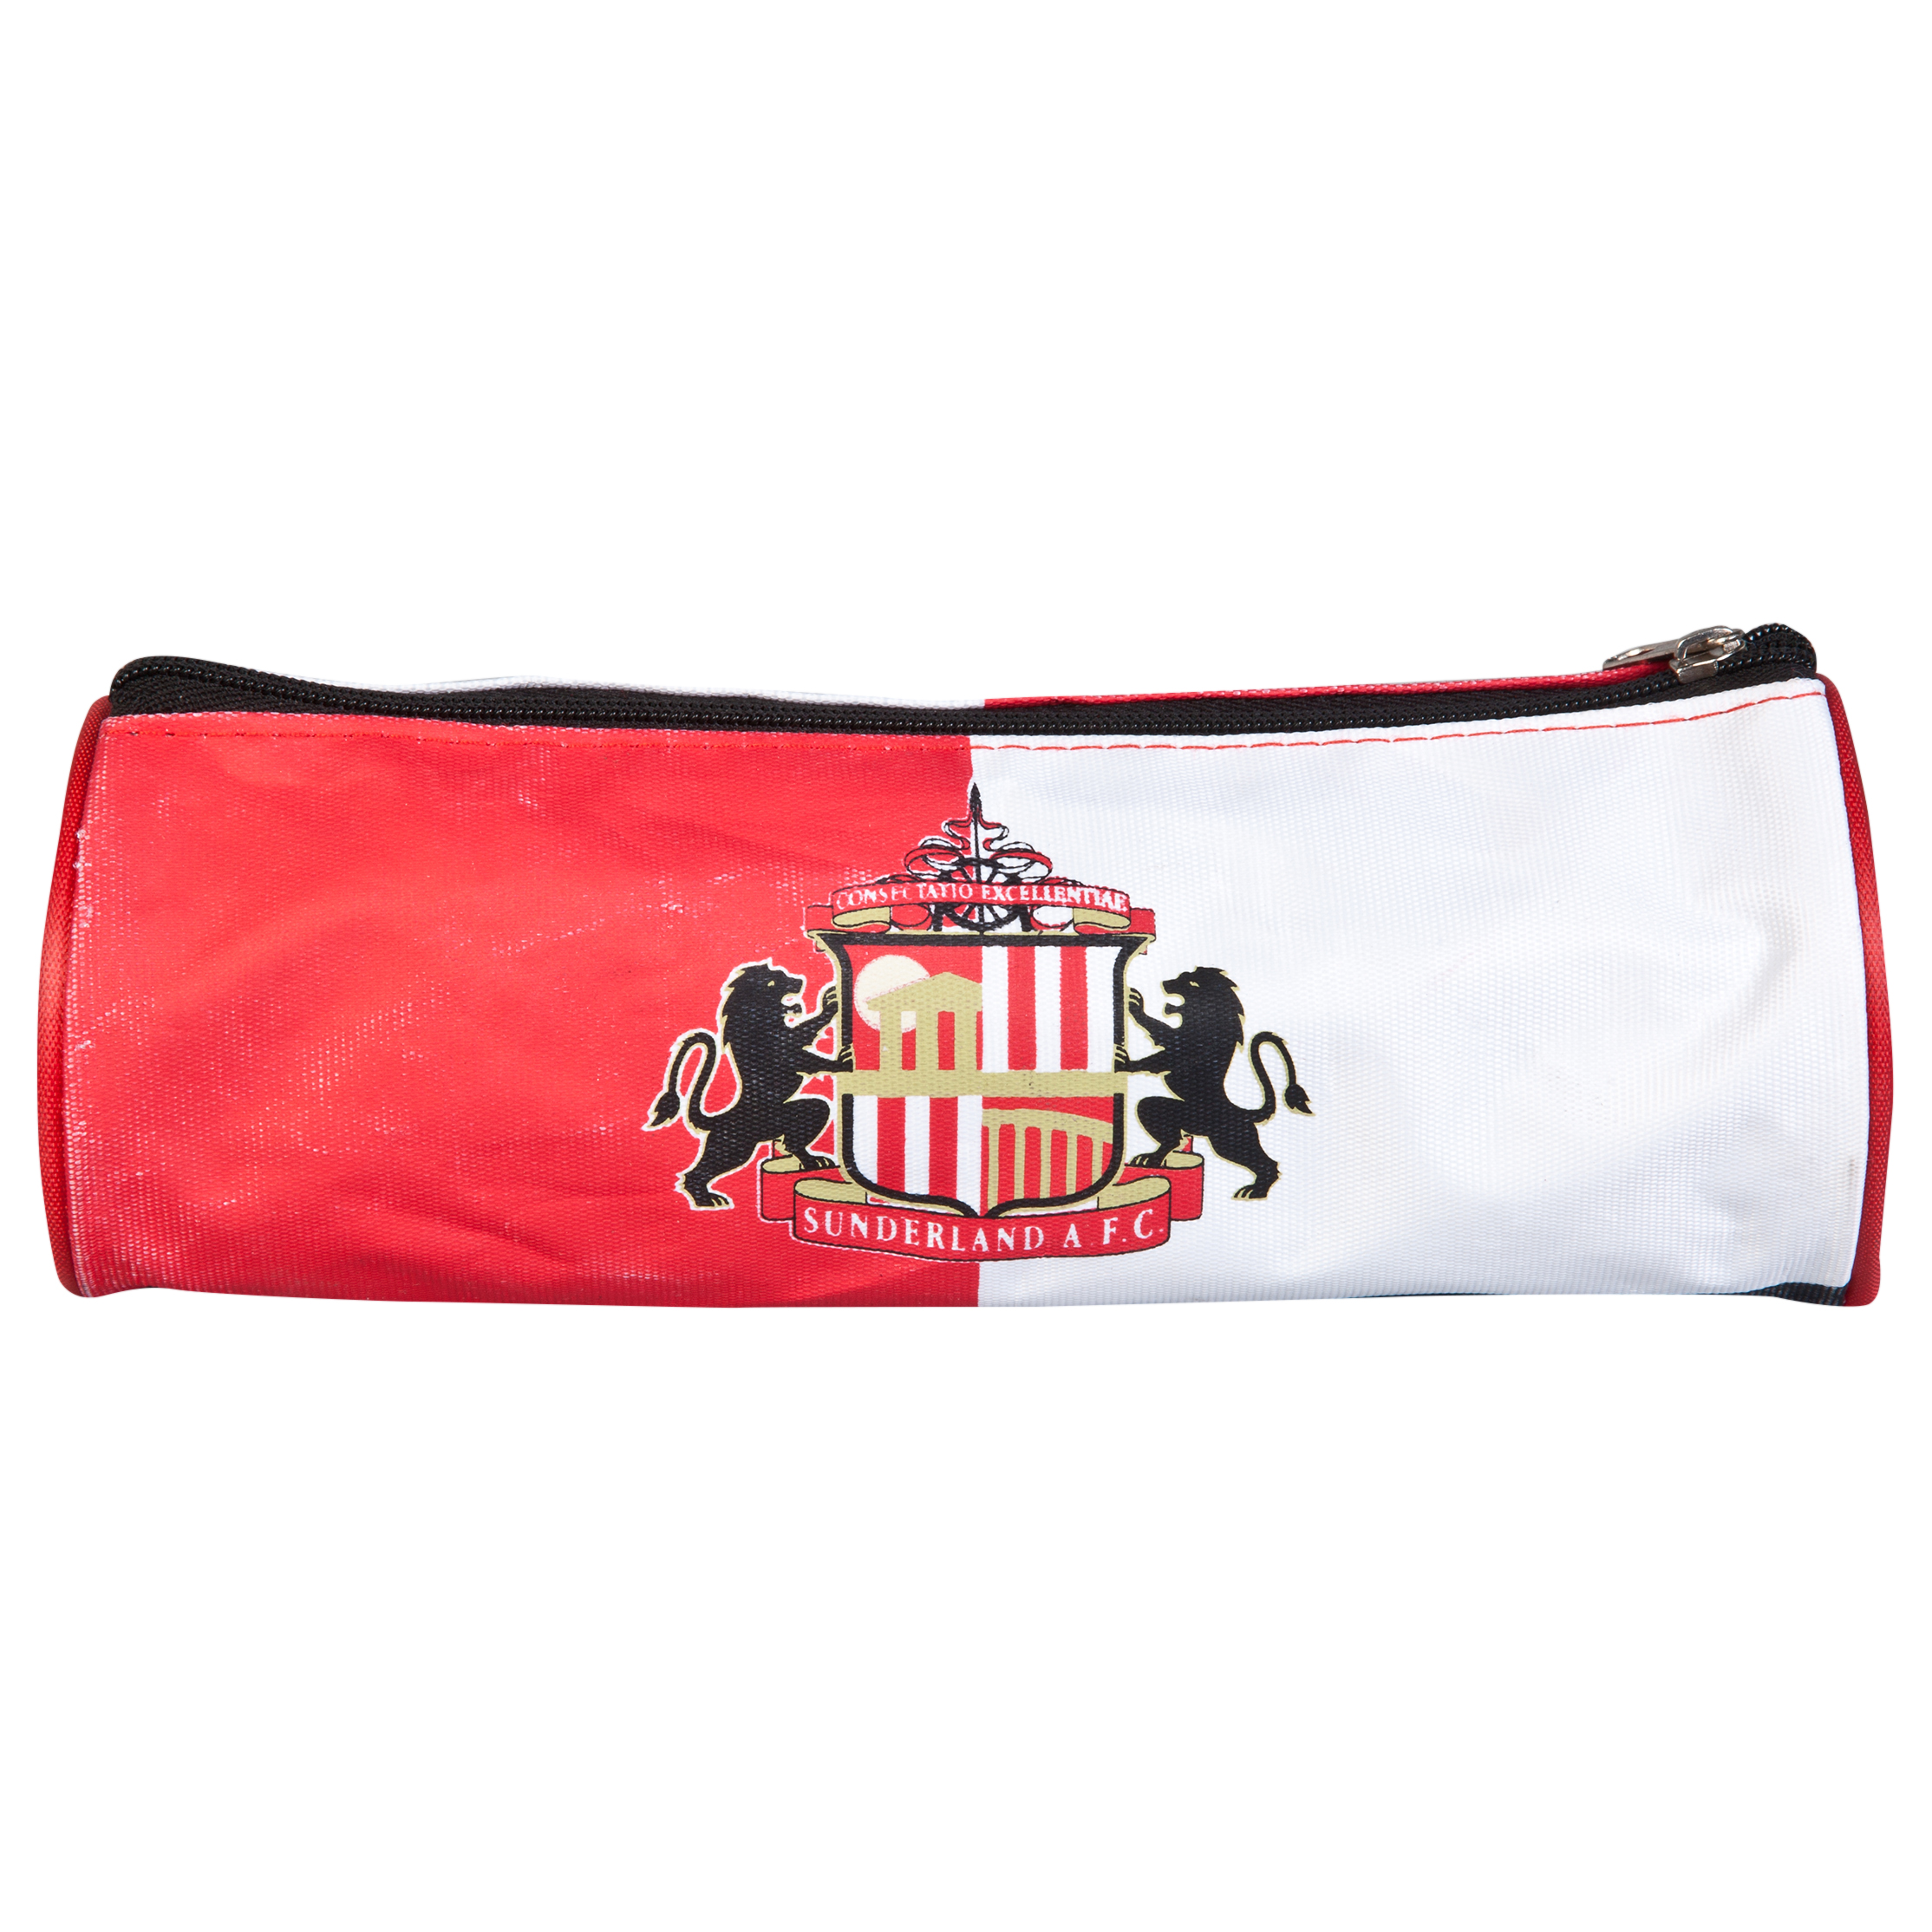 Sunderland Barrel Pencil Case